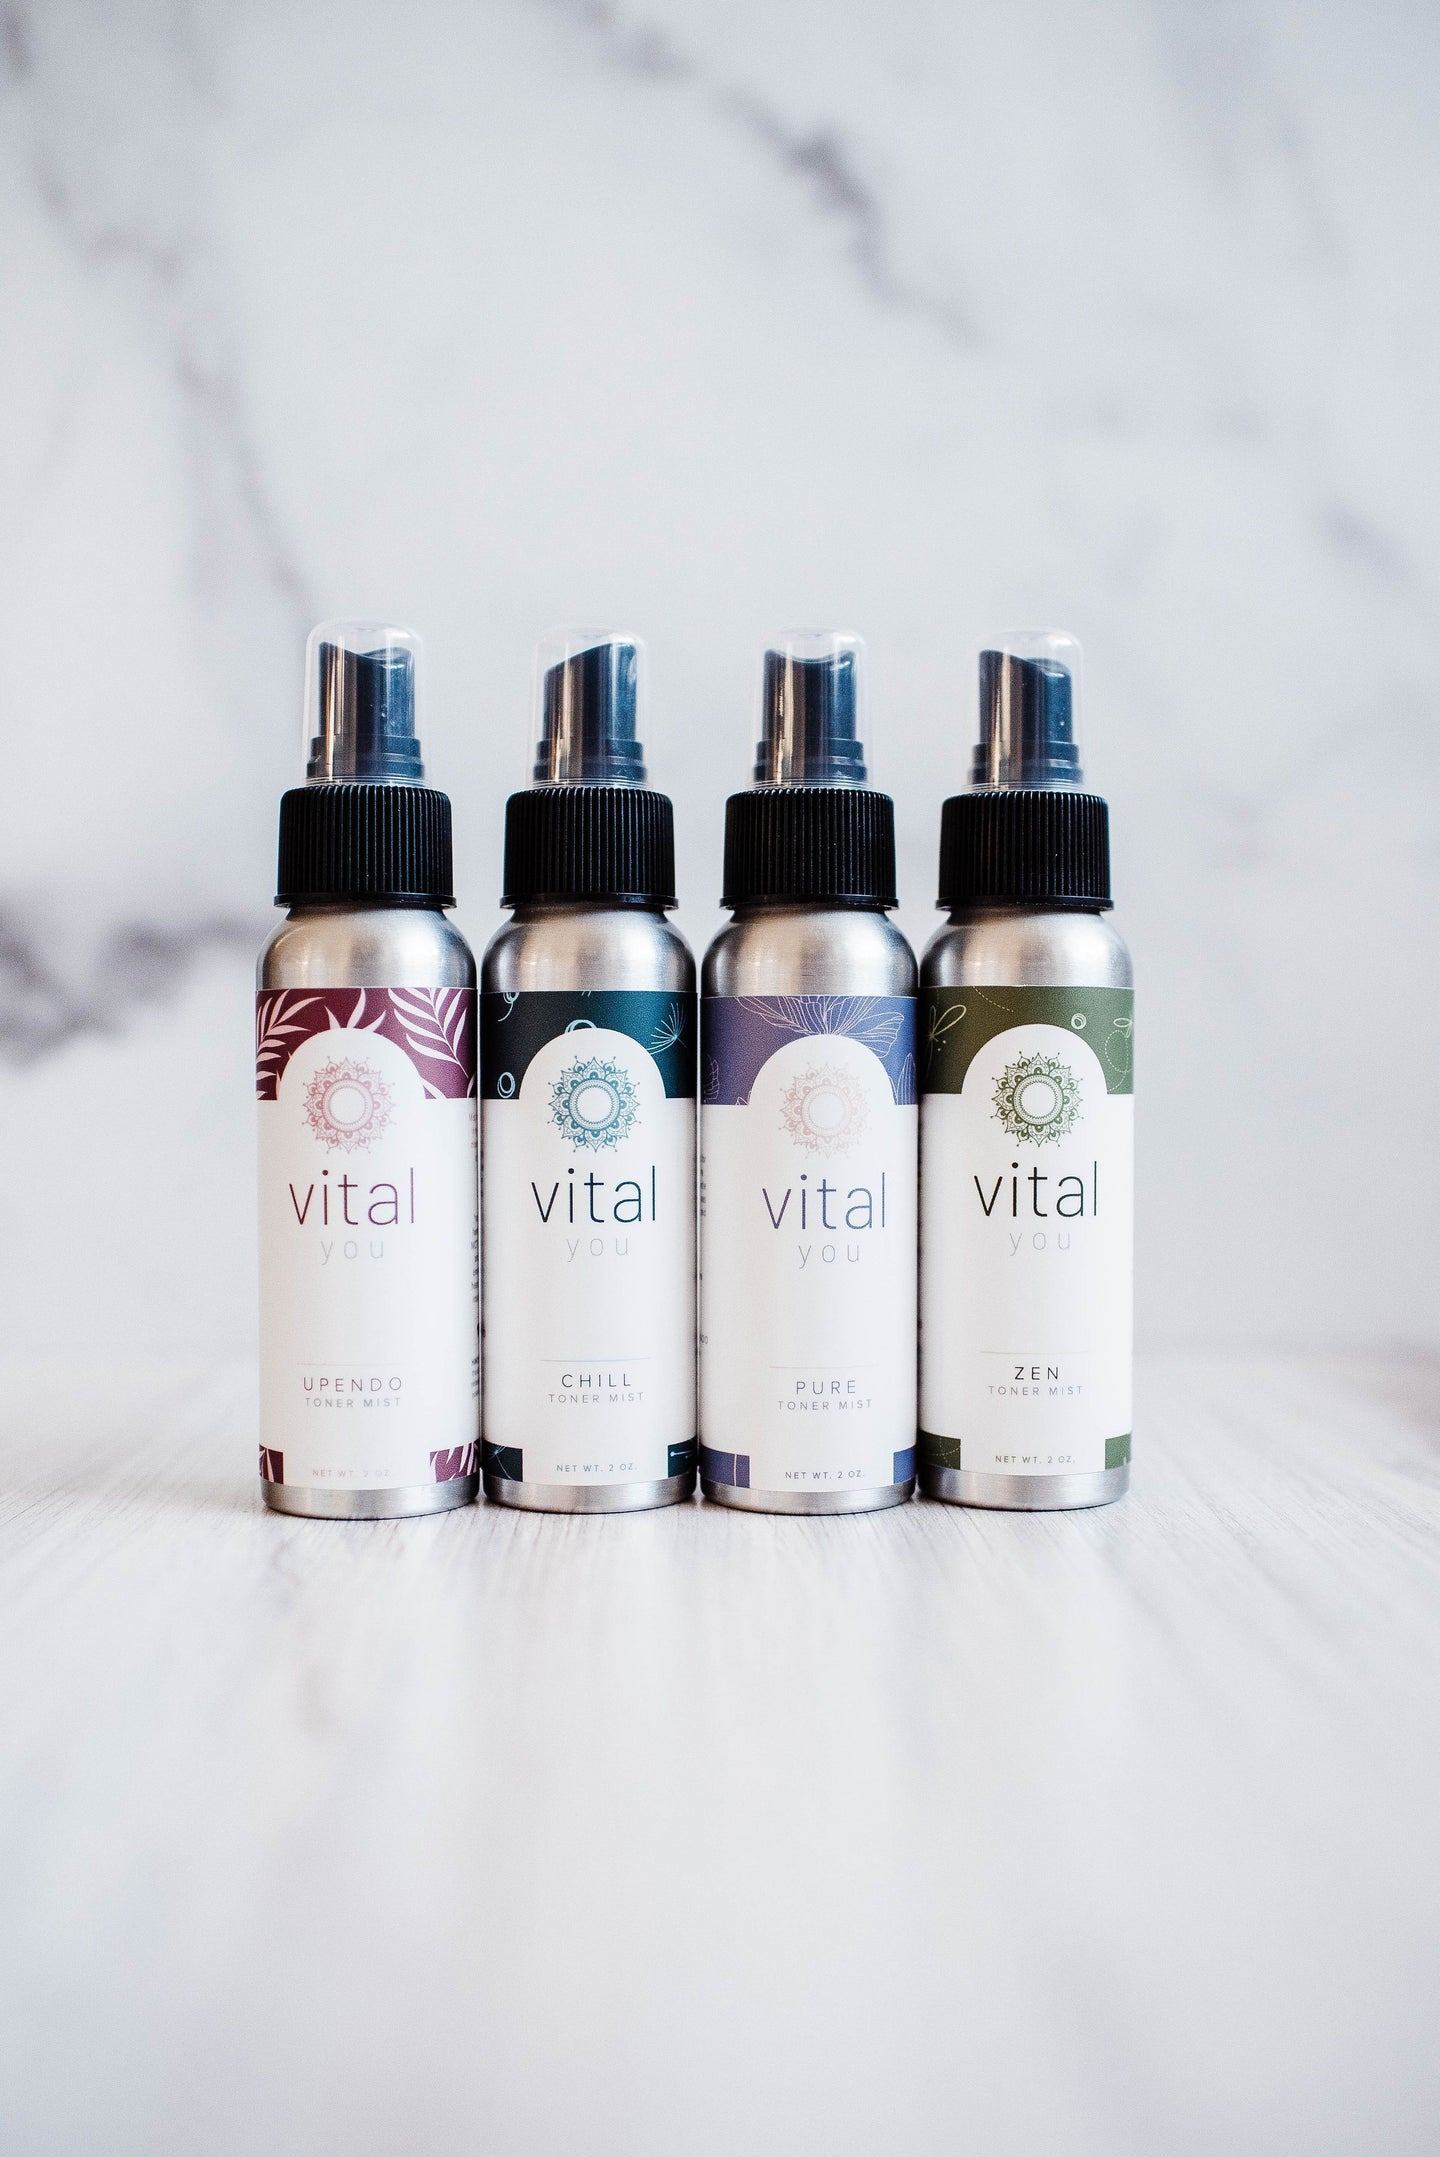 Four bottles of vital you CBD face toner mist spray with different colored labels